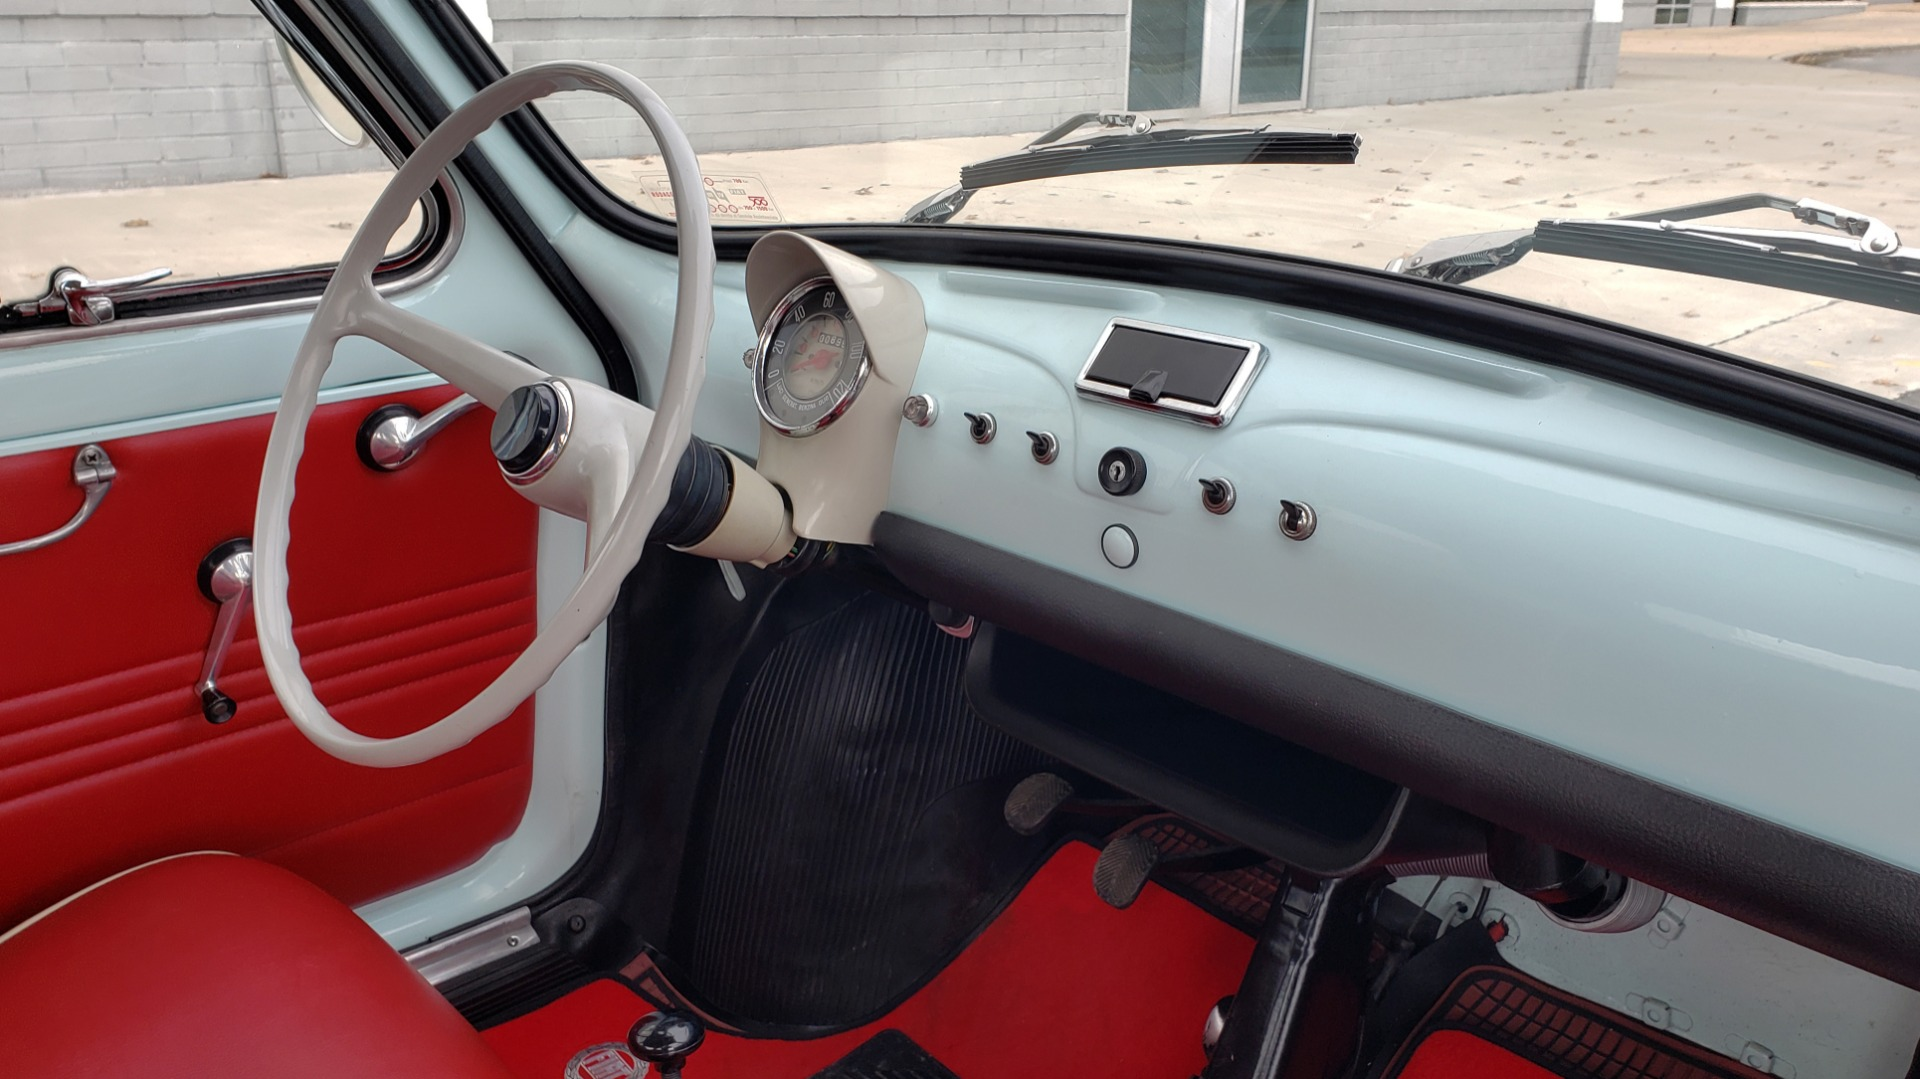 Used 1968 FIAT 500 NUOVA / SOFT-TOP / LUGGAGE RACK / RESTORED, LIKE NEW for sale $21,900 at Formula Imports in Charlotte NC 28227 34